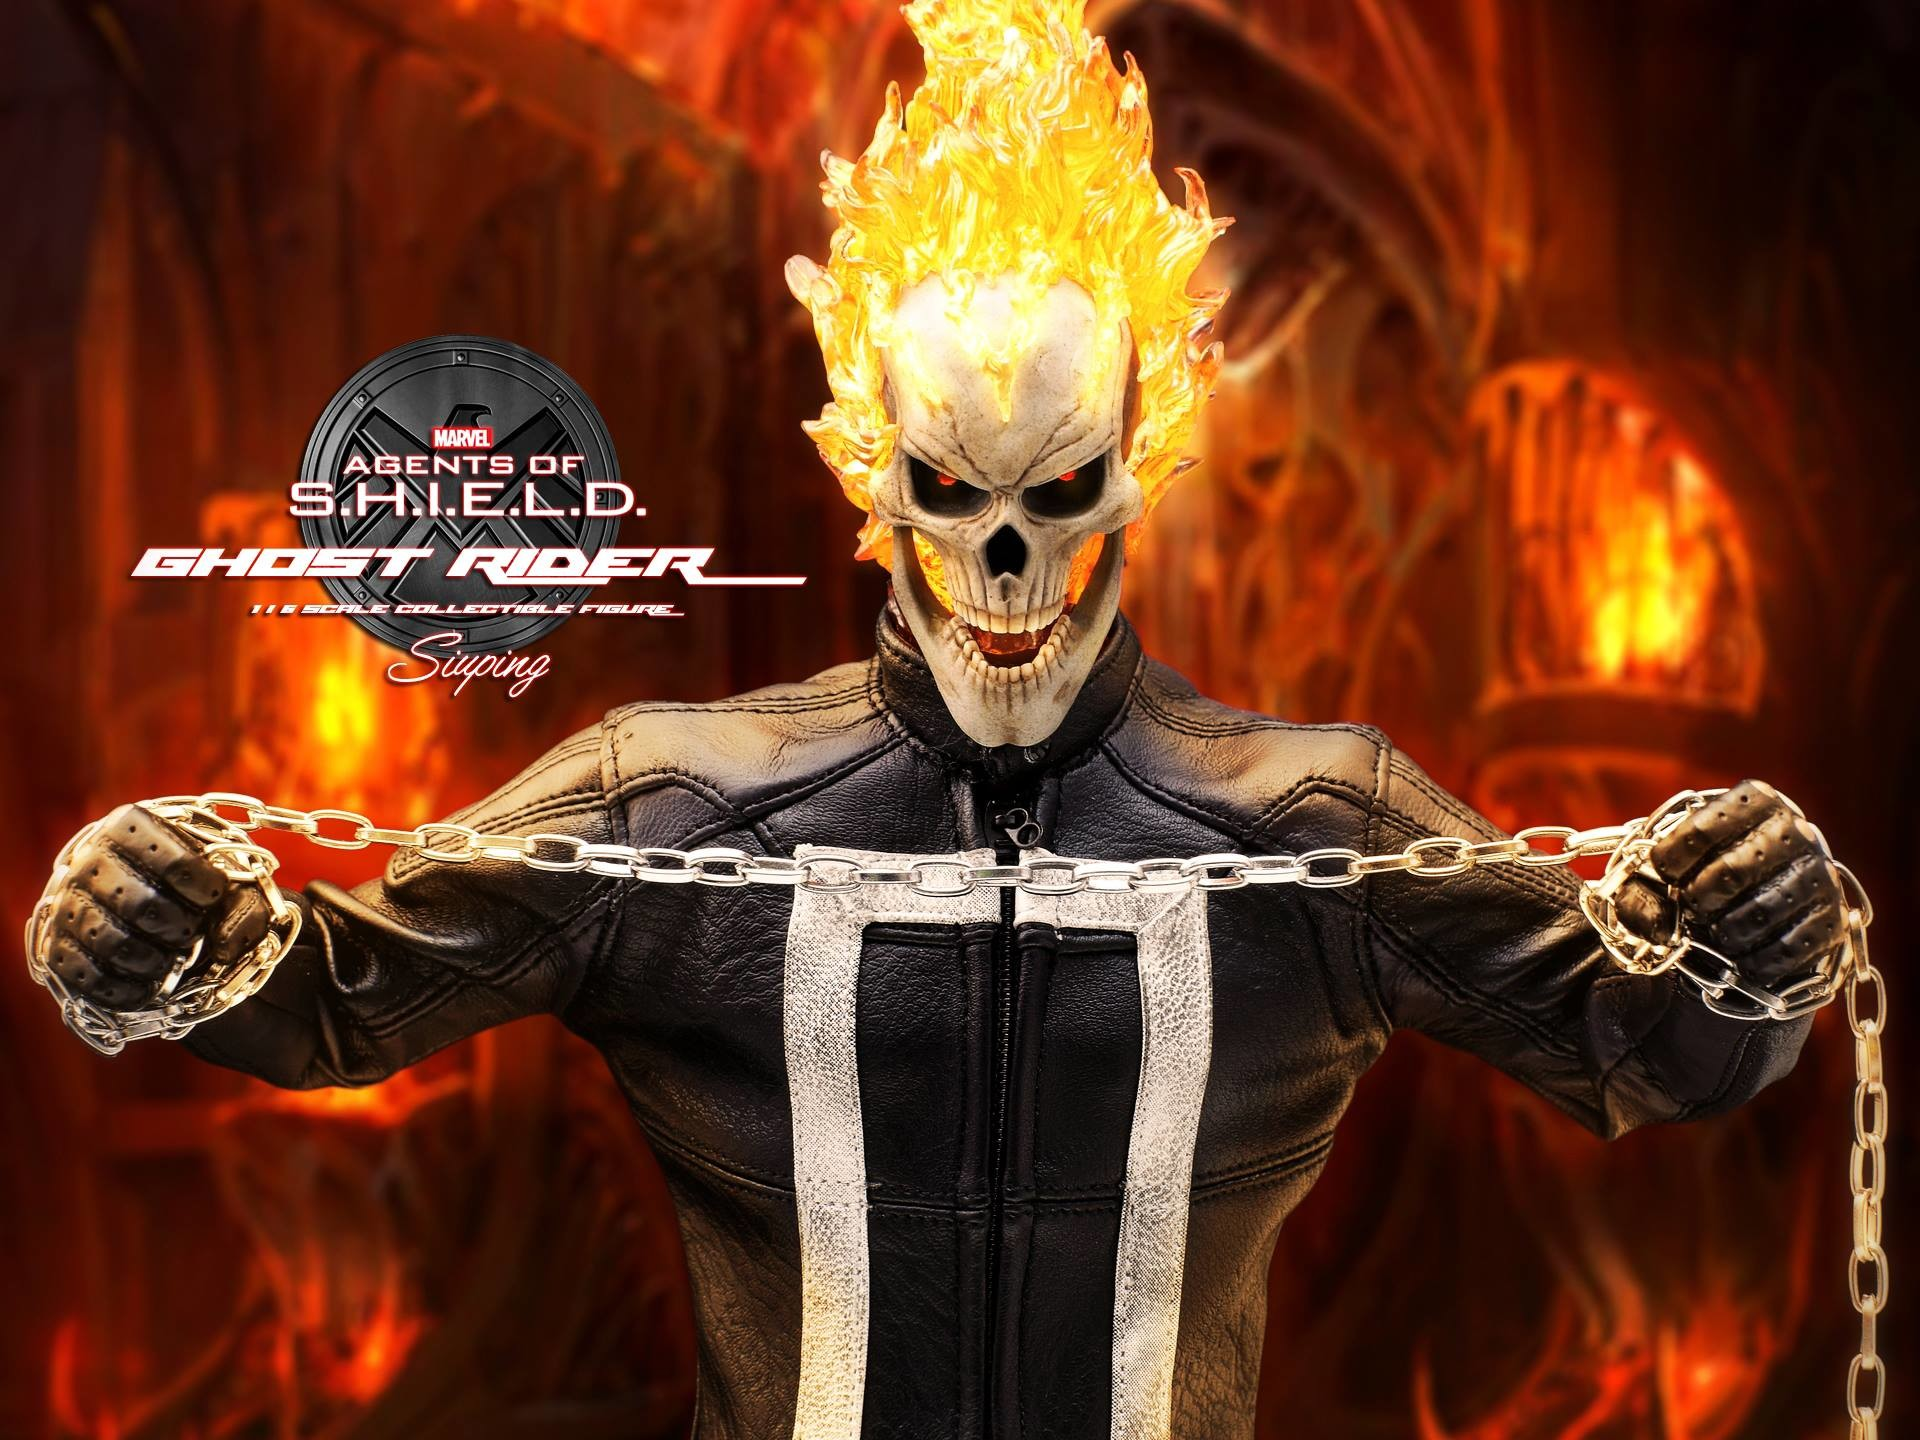 Hot Toys Agents of S.H.I.E.L.D. Ghost Rider Final Promo Images … Hot Toys  Agents Of S H I E L D Ghost Rider Final Promo Images